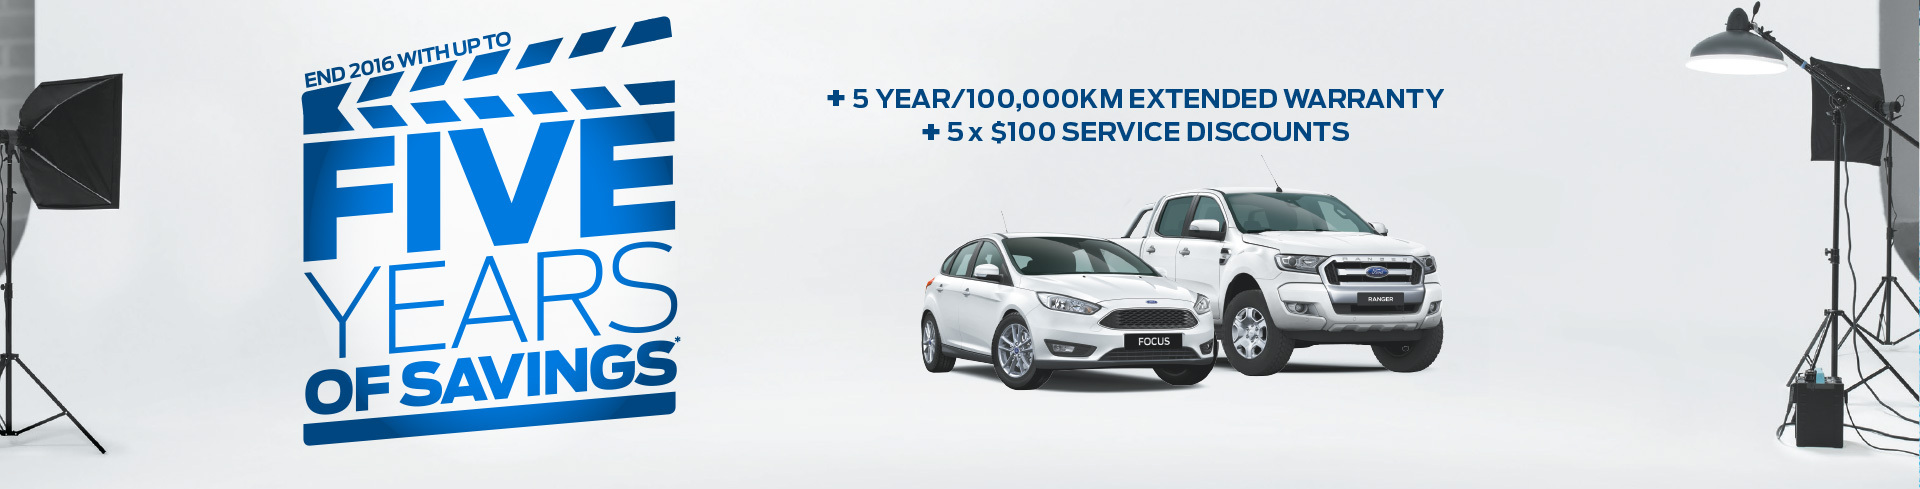 Ford National Offer - Five Years Of Savings